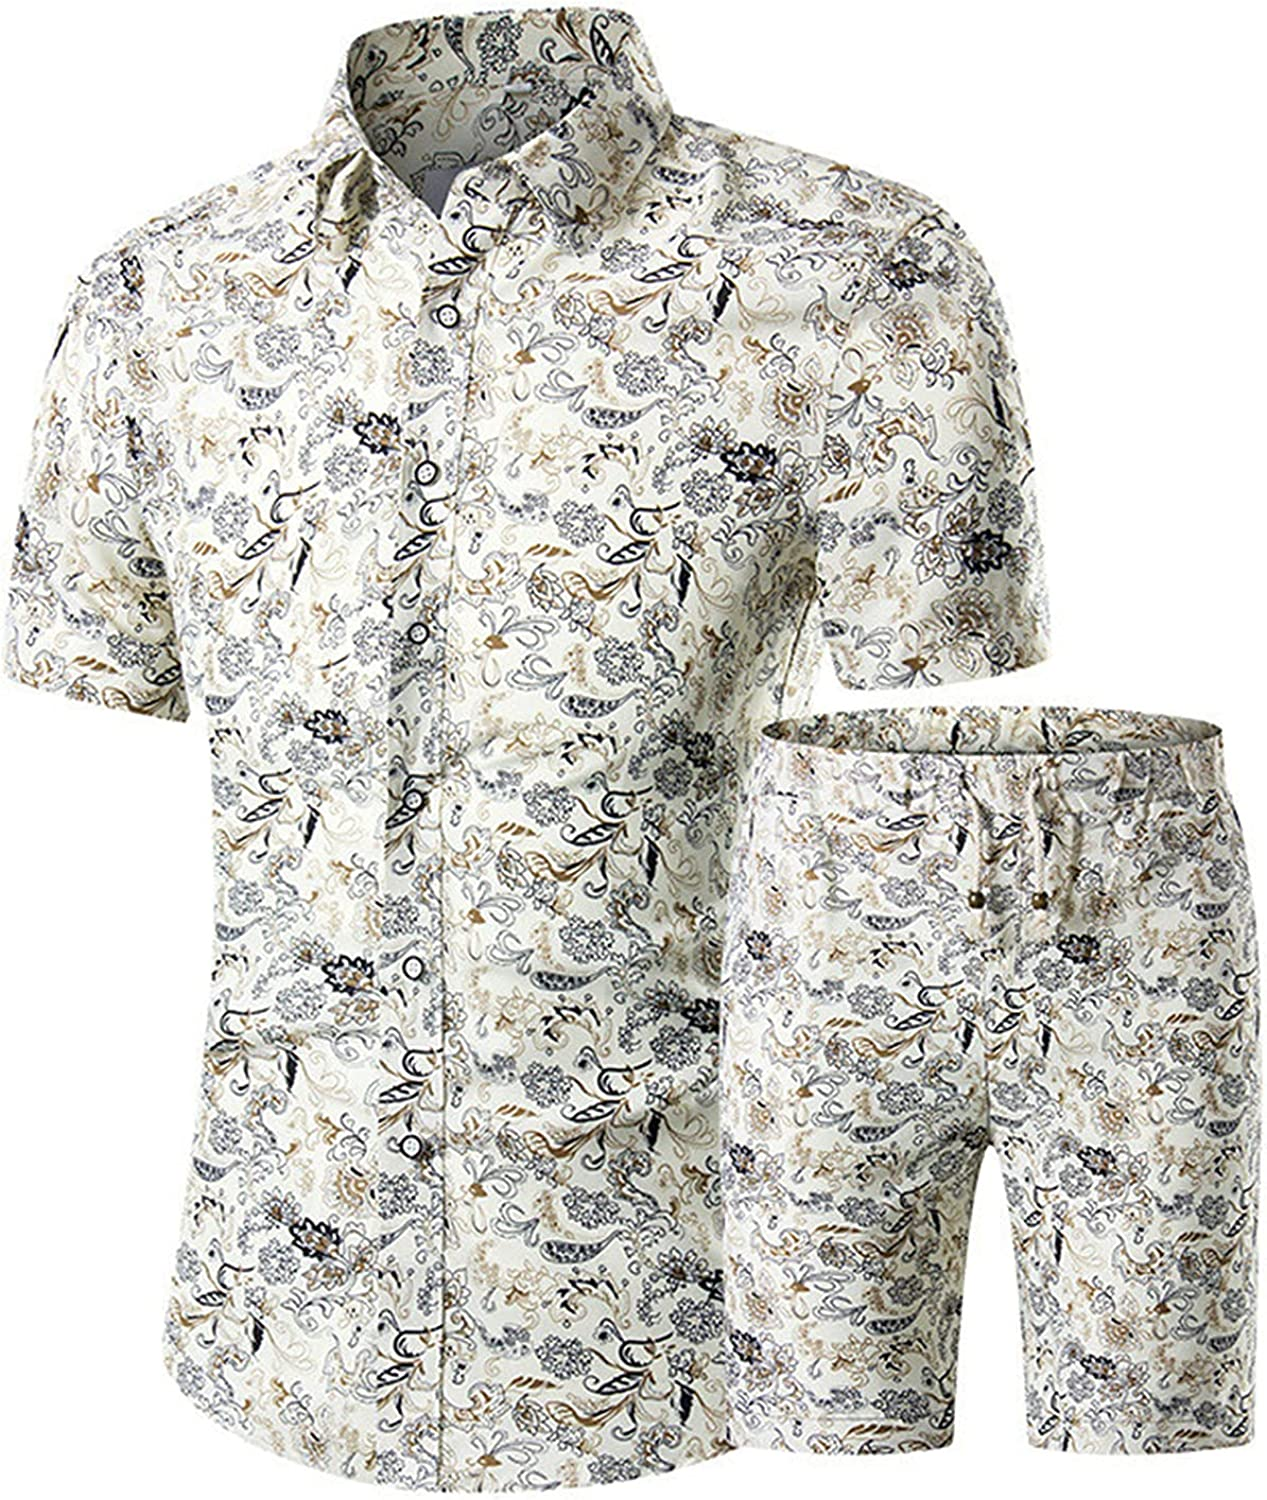 Hawaiian Tracksuit Men Casual Fashion Floral Print Shirts+Shorts Set 2 Pieces Set Beach Suits Male Cool Clothing